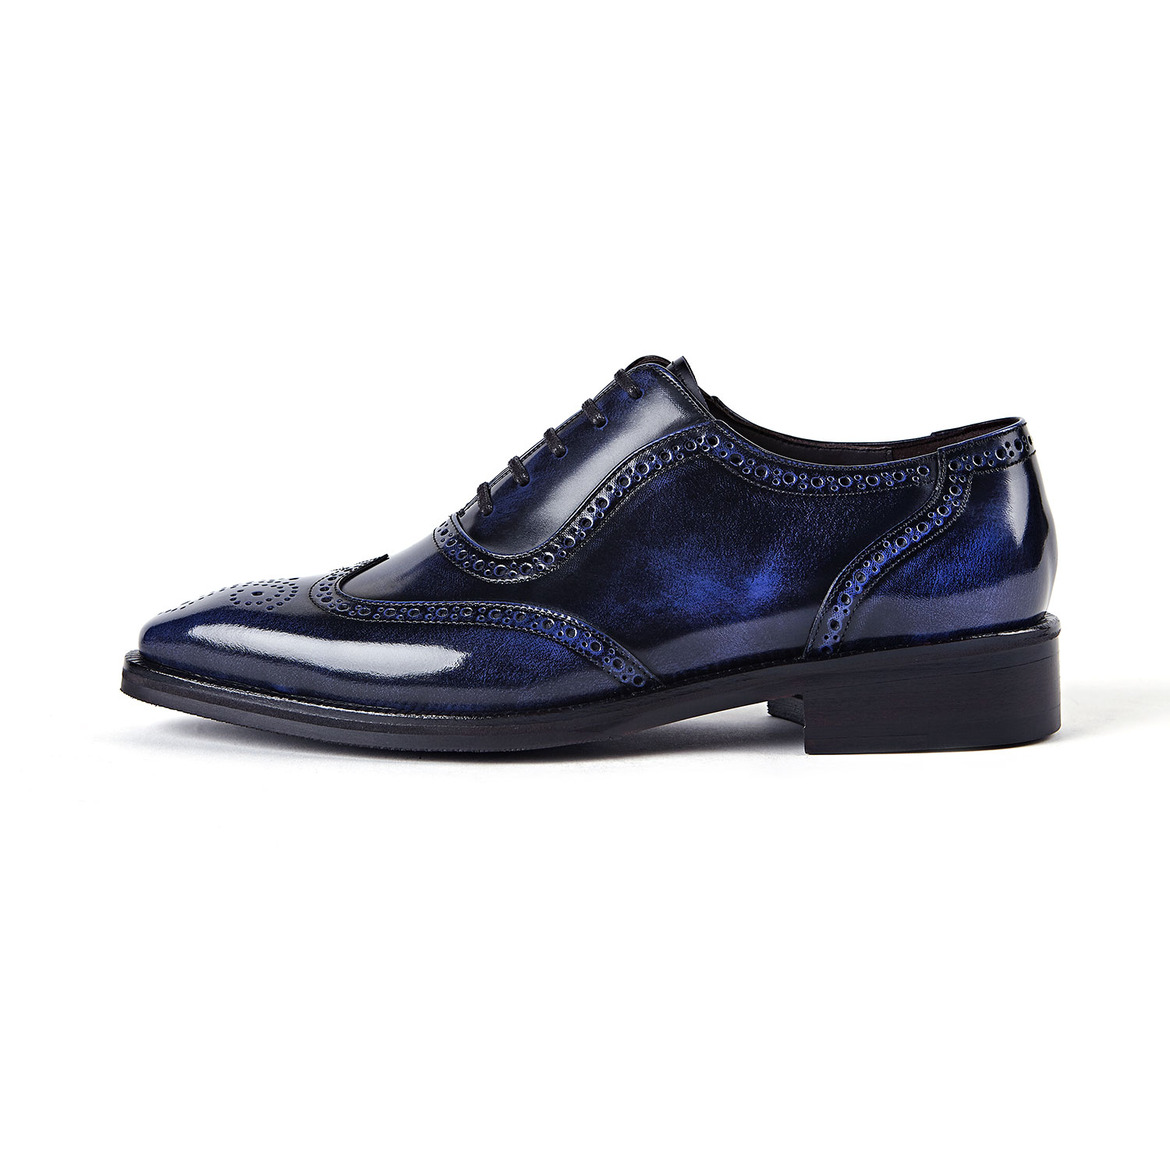 MIRAVO 1 [Premium Wing-Tip Oxford] (Customizable)